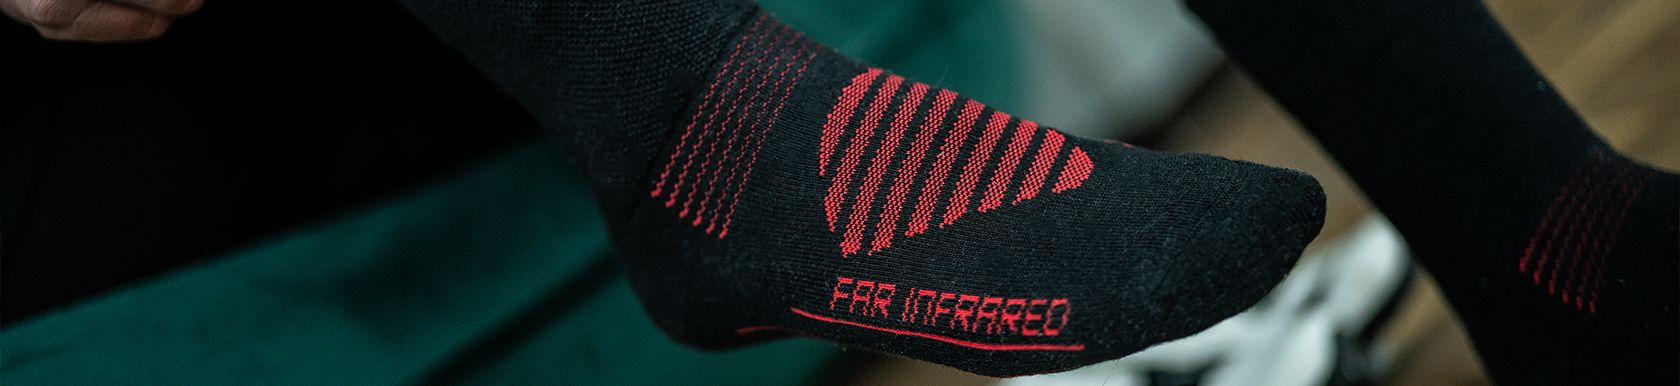 All about our socks